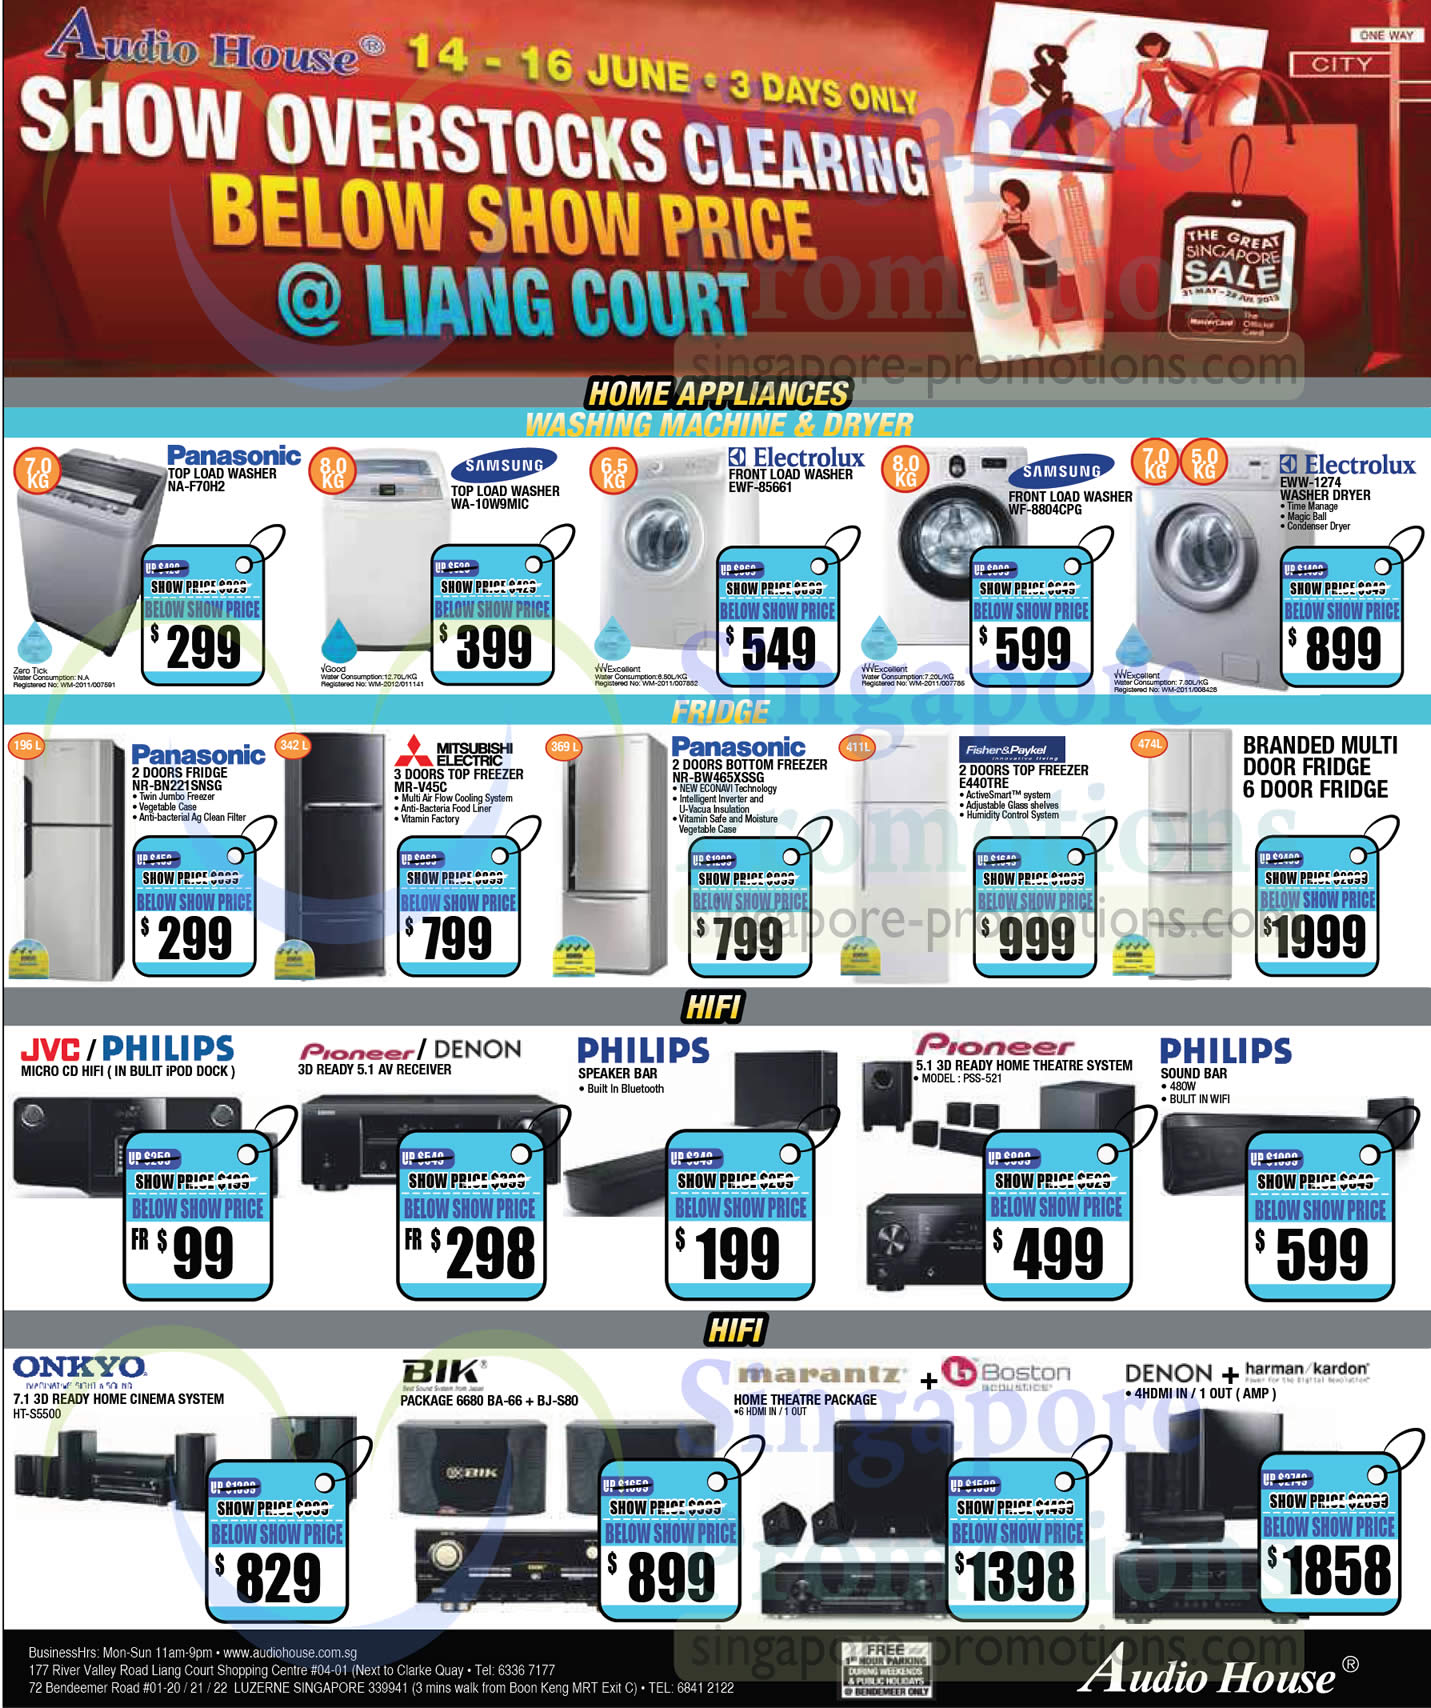 Washers, Fridges, Home Theatre Systems, Panasonic, Samsung, Electrolux, Fisher n Paykel, Mitsubishi, Pioneer, Onkyo